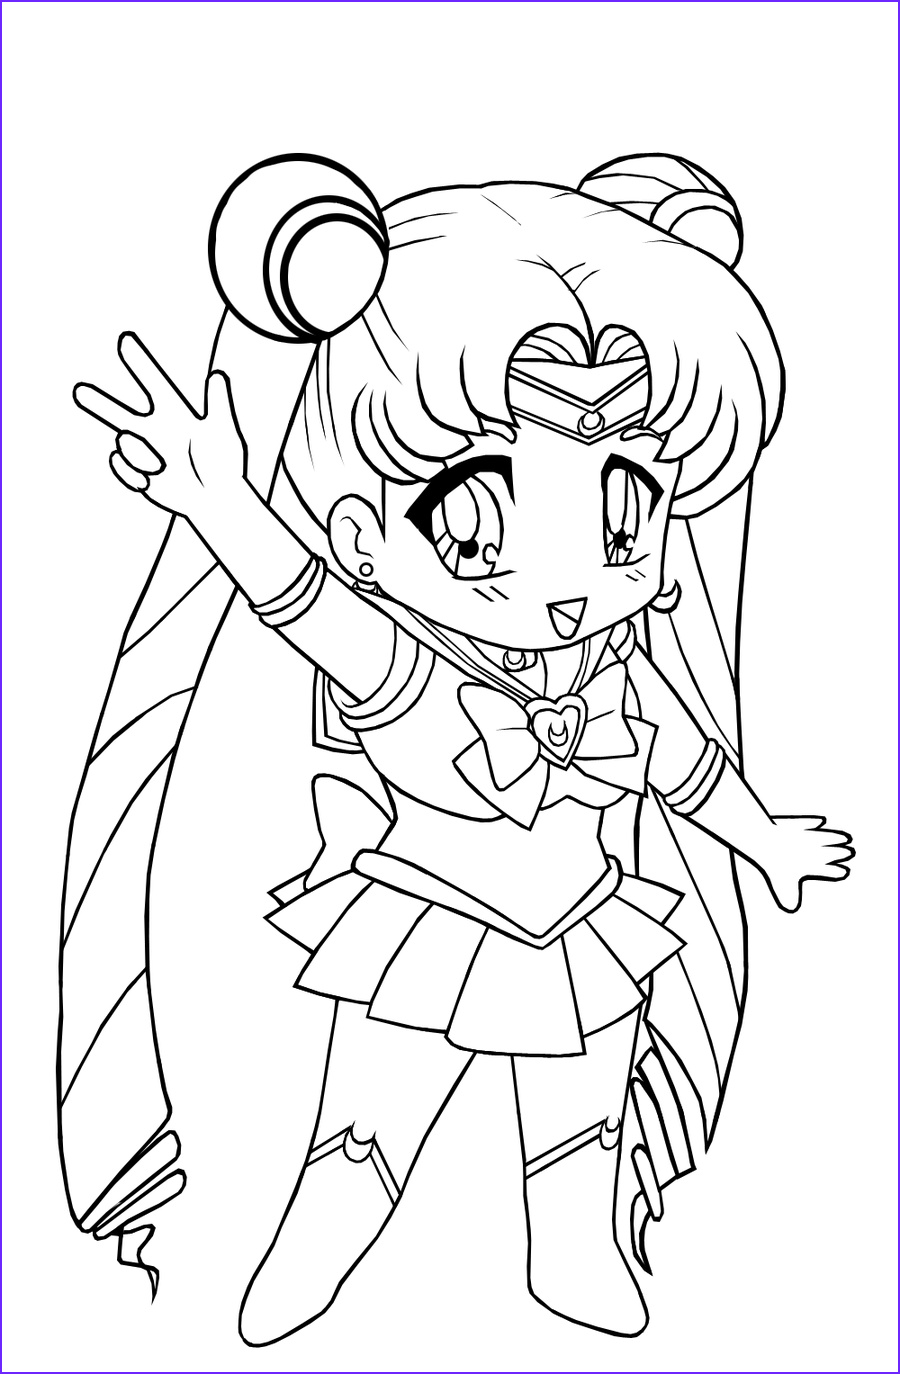 Anime Coloring Page for Kids Luxury Collection Anime Coloring Pages Google Search Coloring